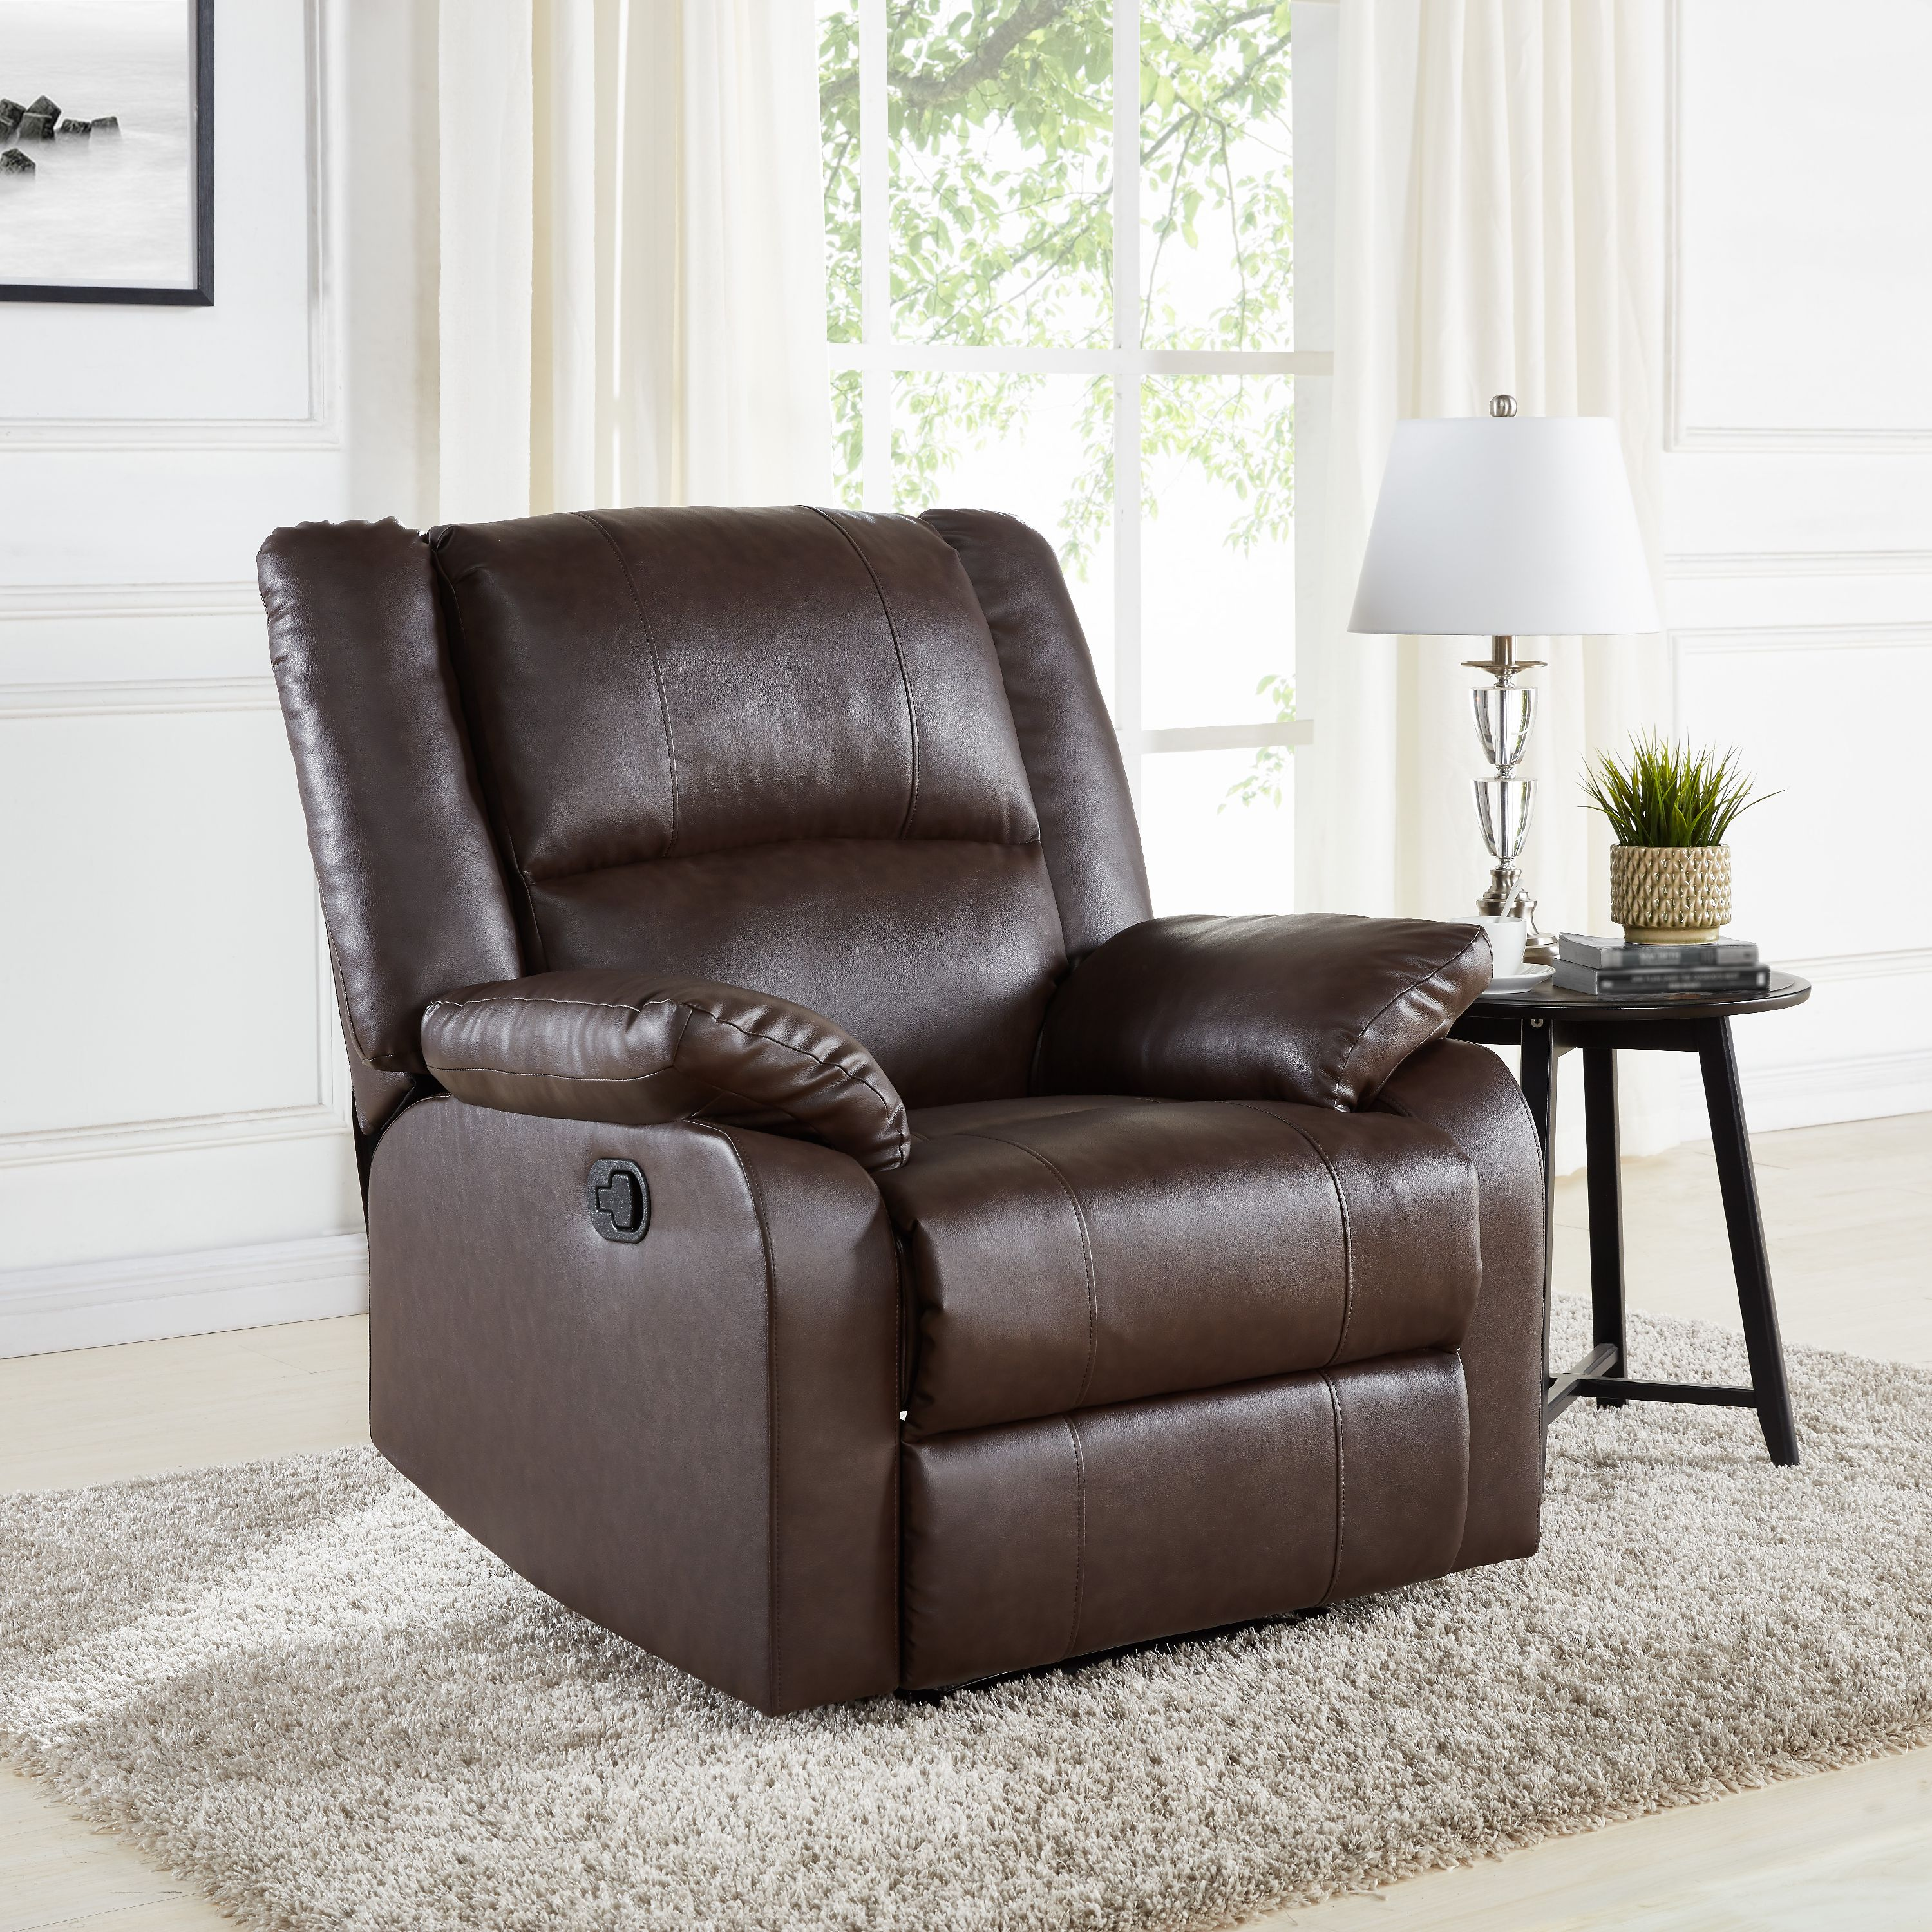 Mainstays Faux Leather Upholstered Recliner, Multiple Colors